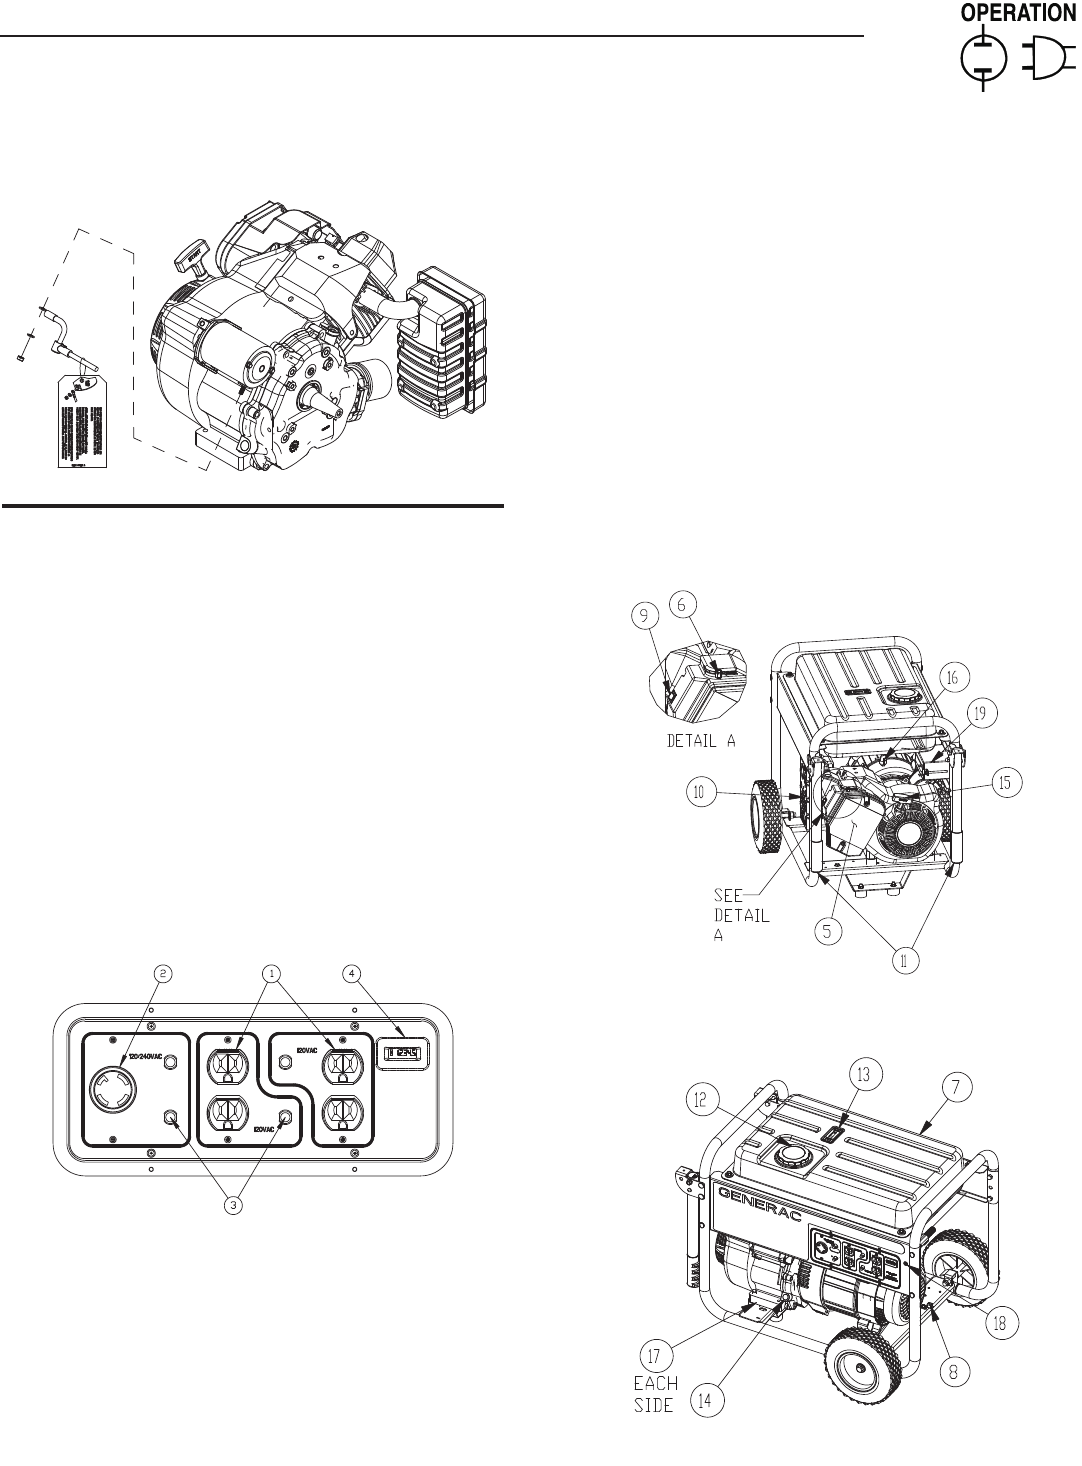 Page 7 of Generac Portable Generator 000 & 8 User Guide